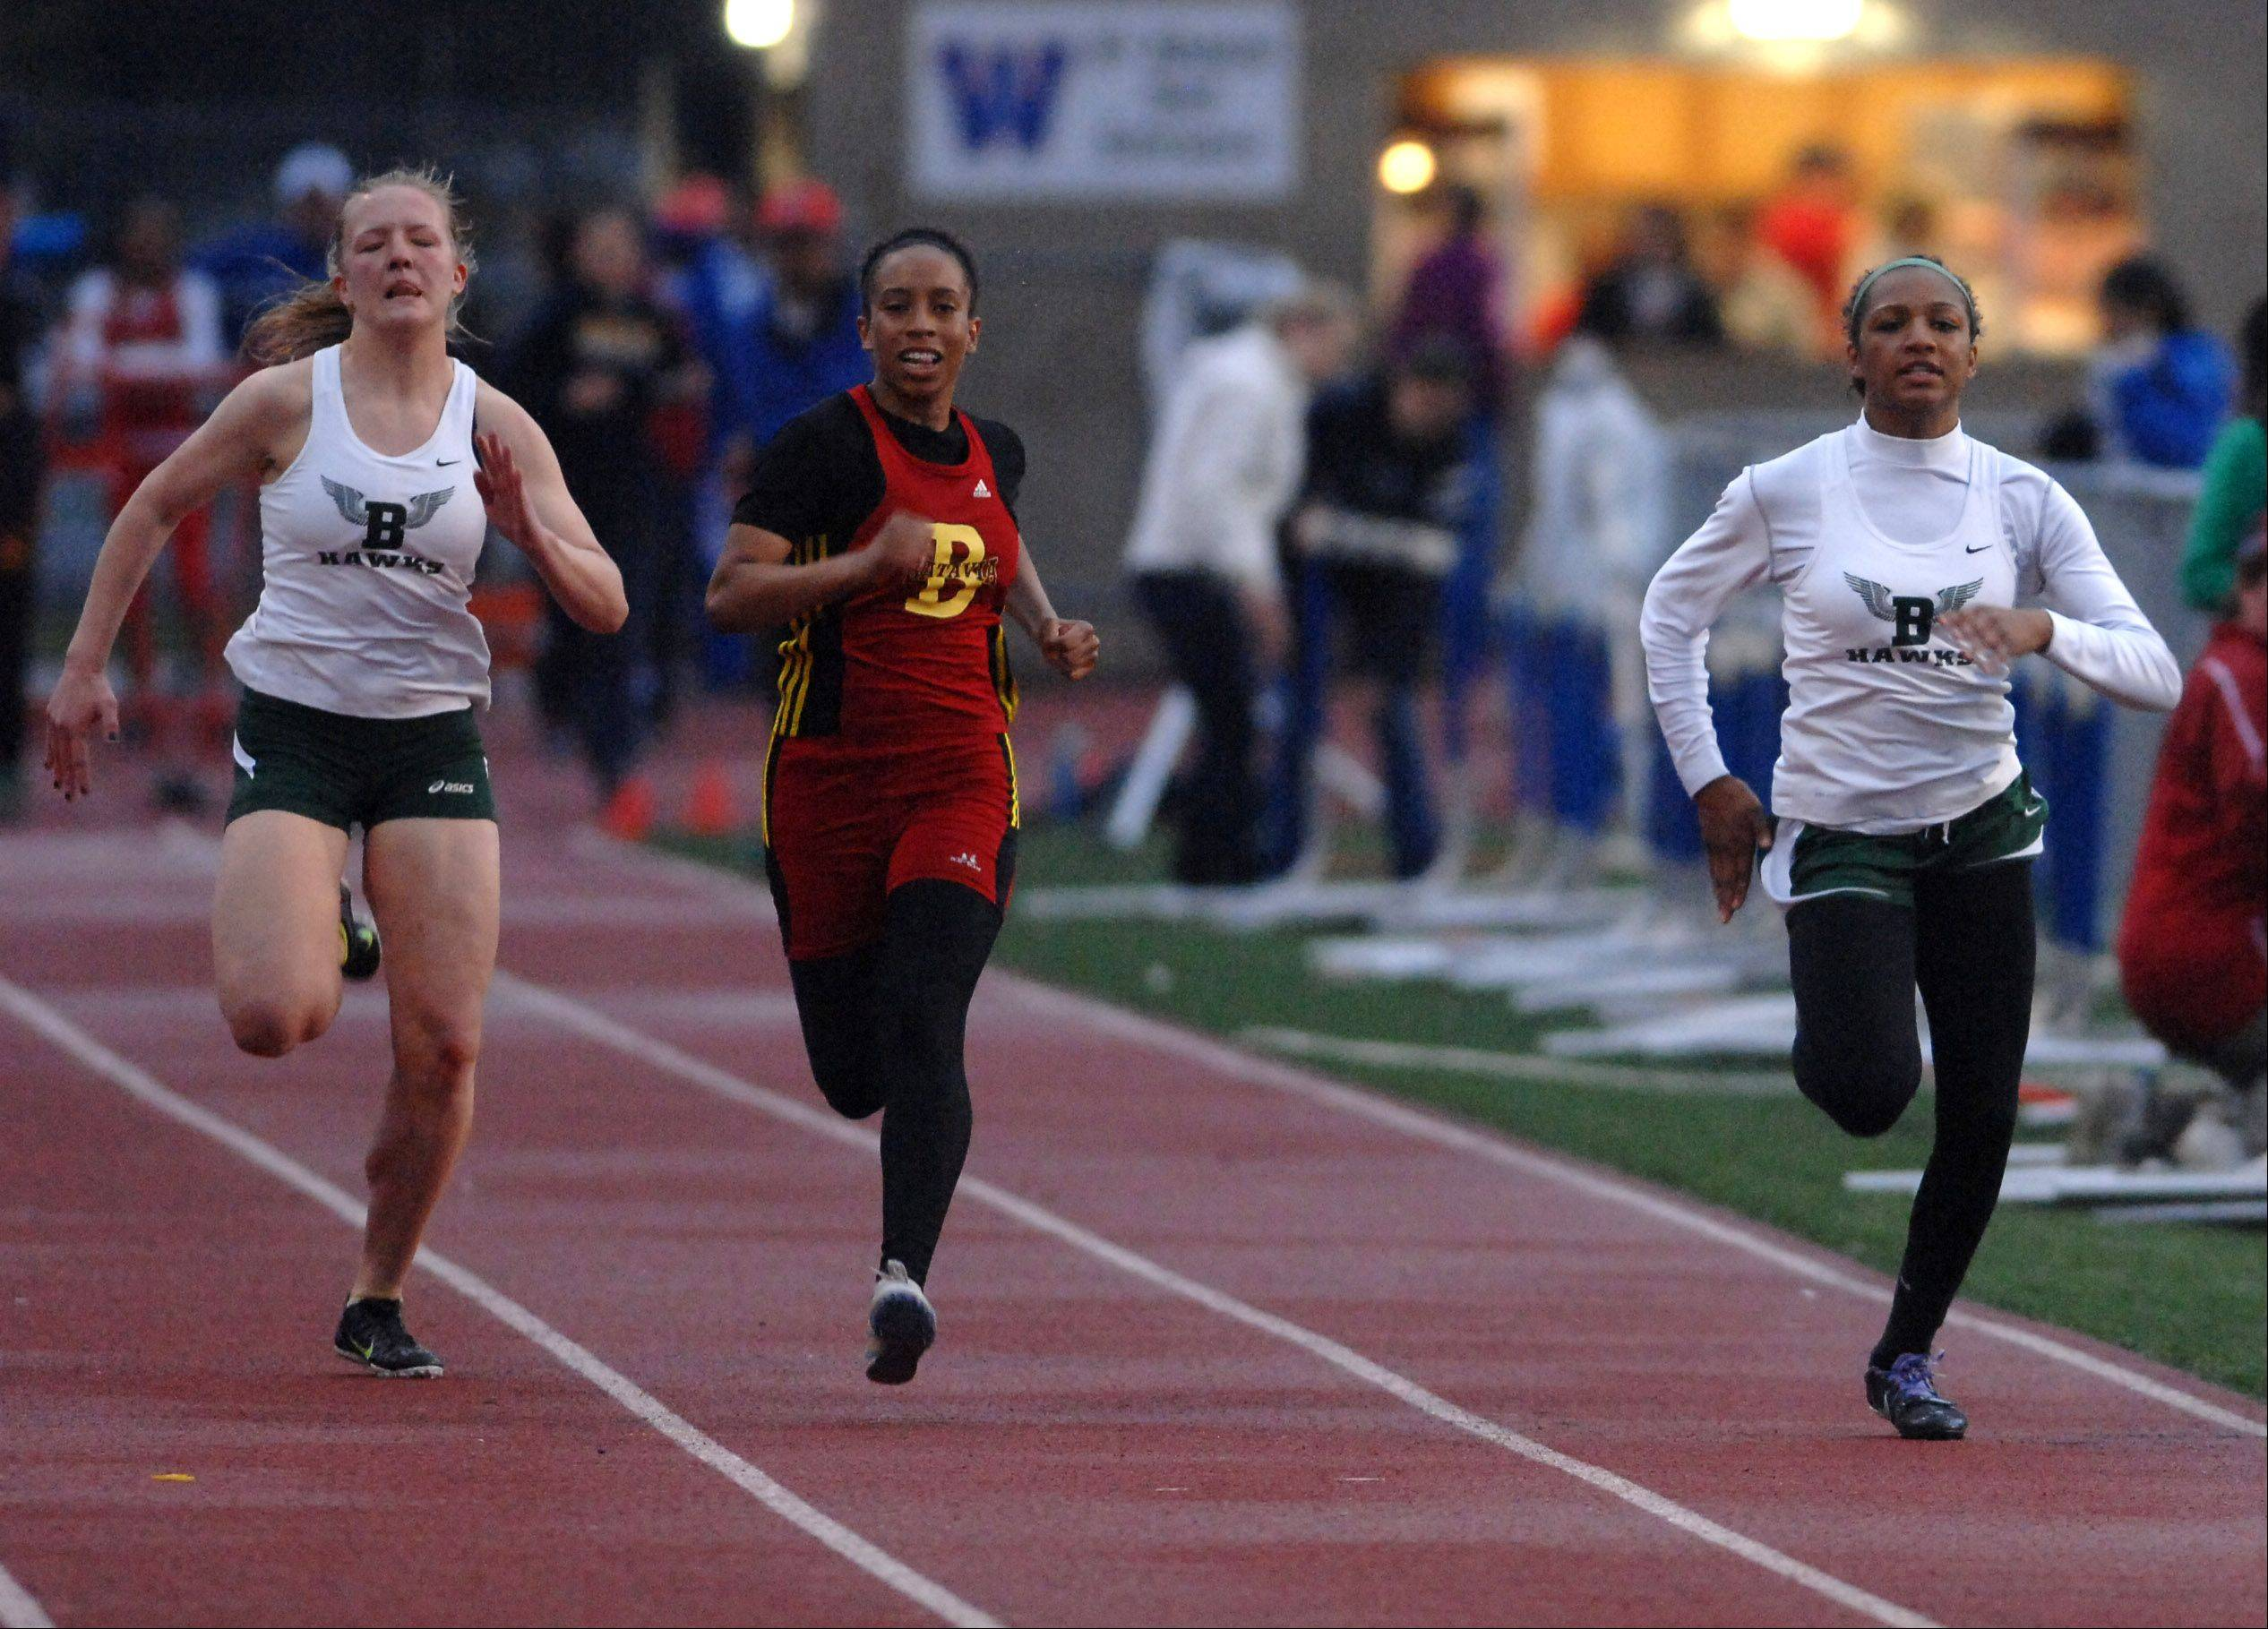 Candace Trent of Bartlett, right, finished third in the 100-meter dash during the West Aurora girl's track sectional Thursday. Megan Seidl of Bartlett and Chanelle Gibson of Batavia are running at left.